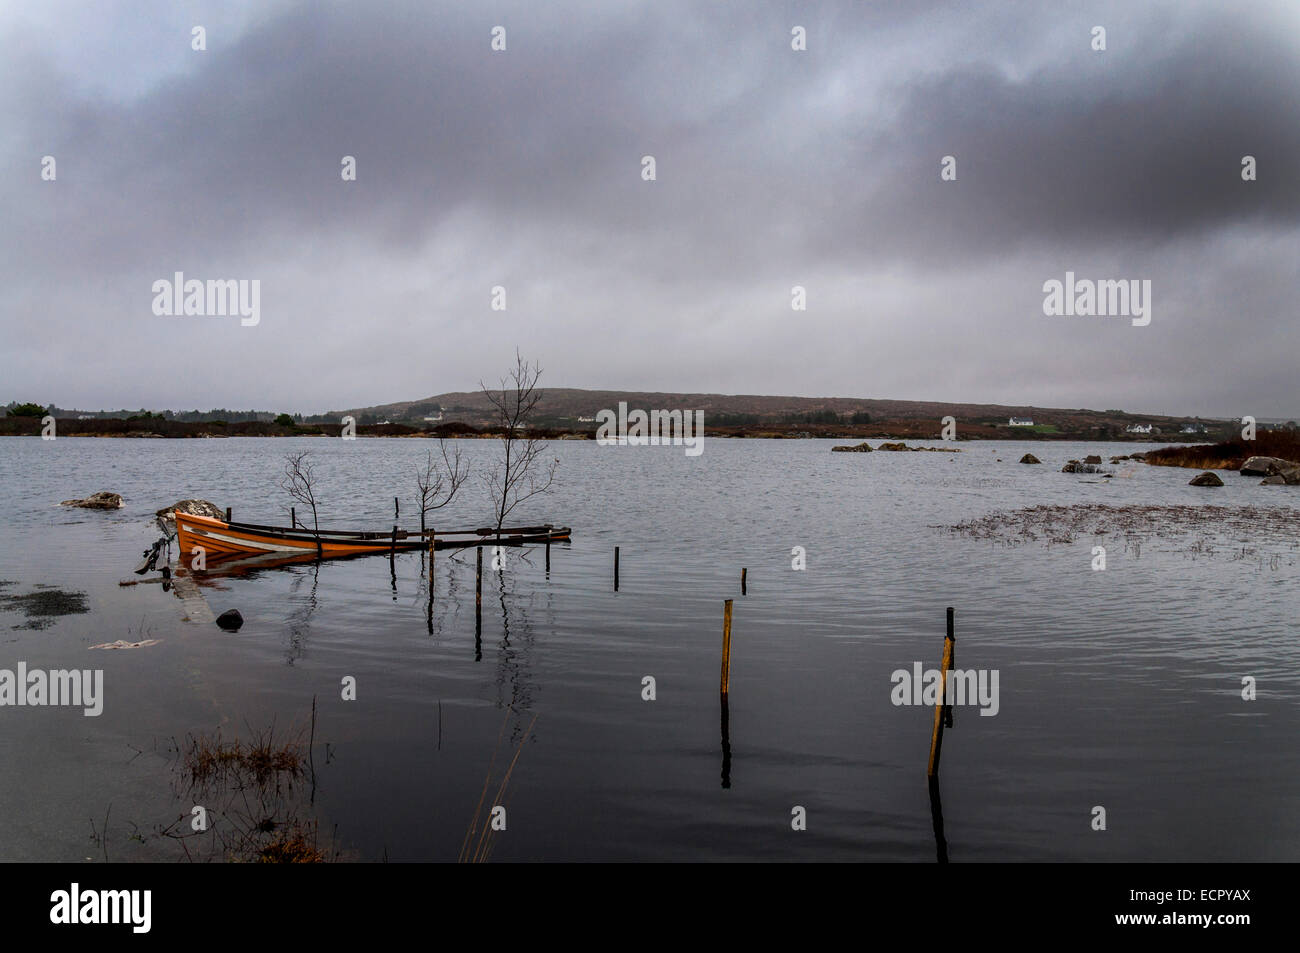 Lake Meela, Dungloe, County Donegal, Ireland. 18th December, 2014. Waterlogged fishing boat and overcast sky give - Stock Image